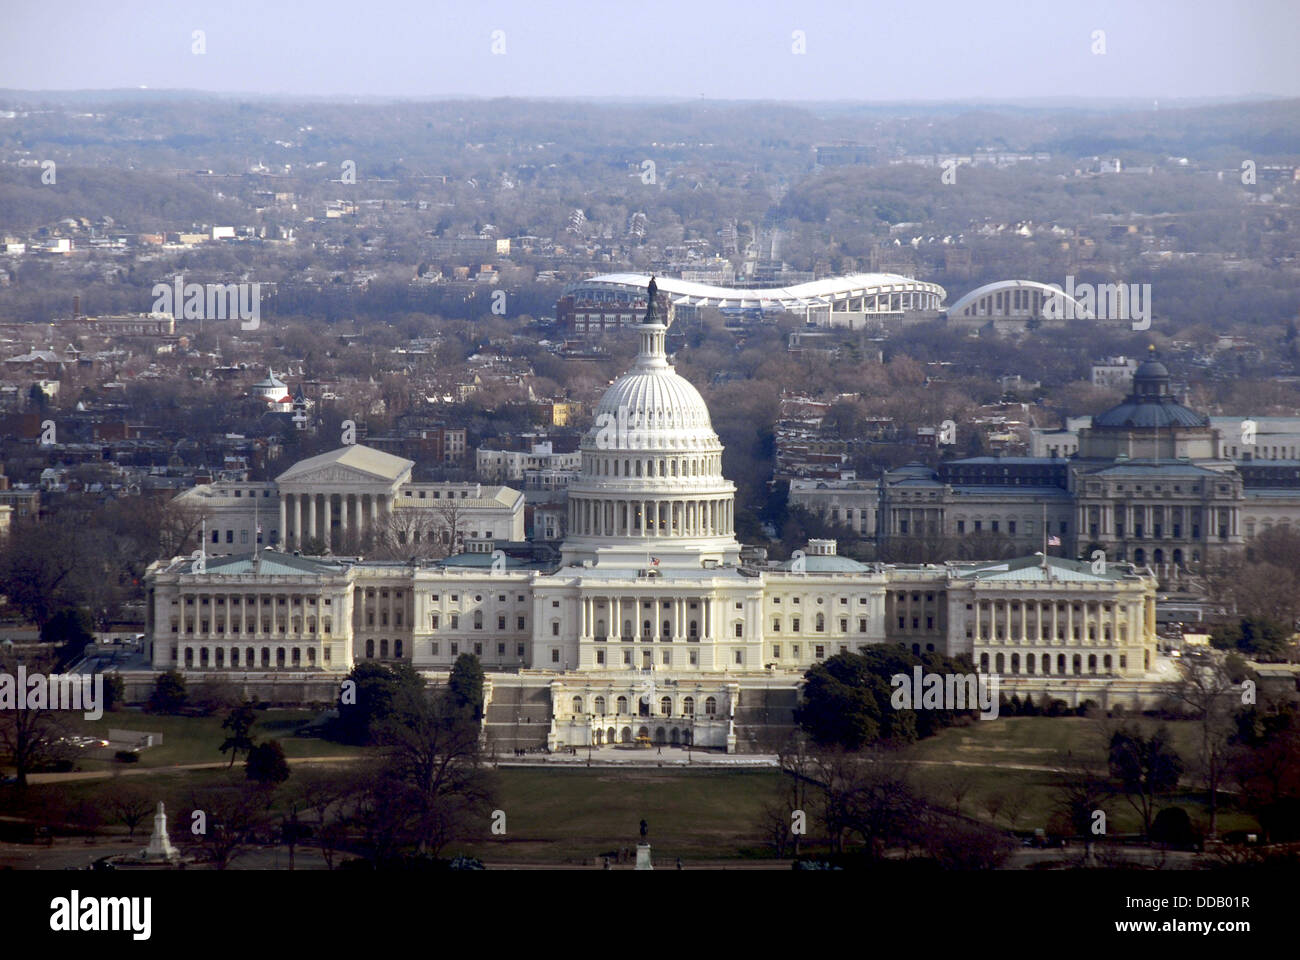 140f56b428 Aerial view of US Capitol Building